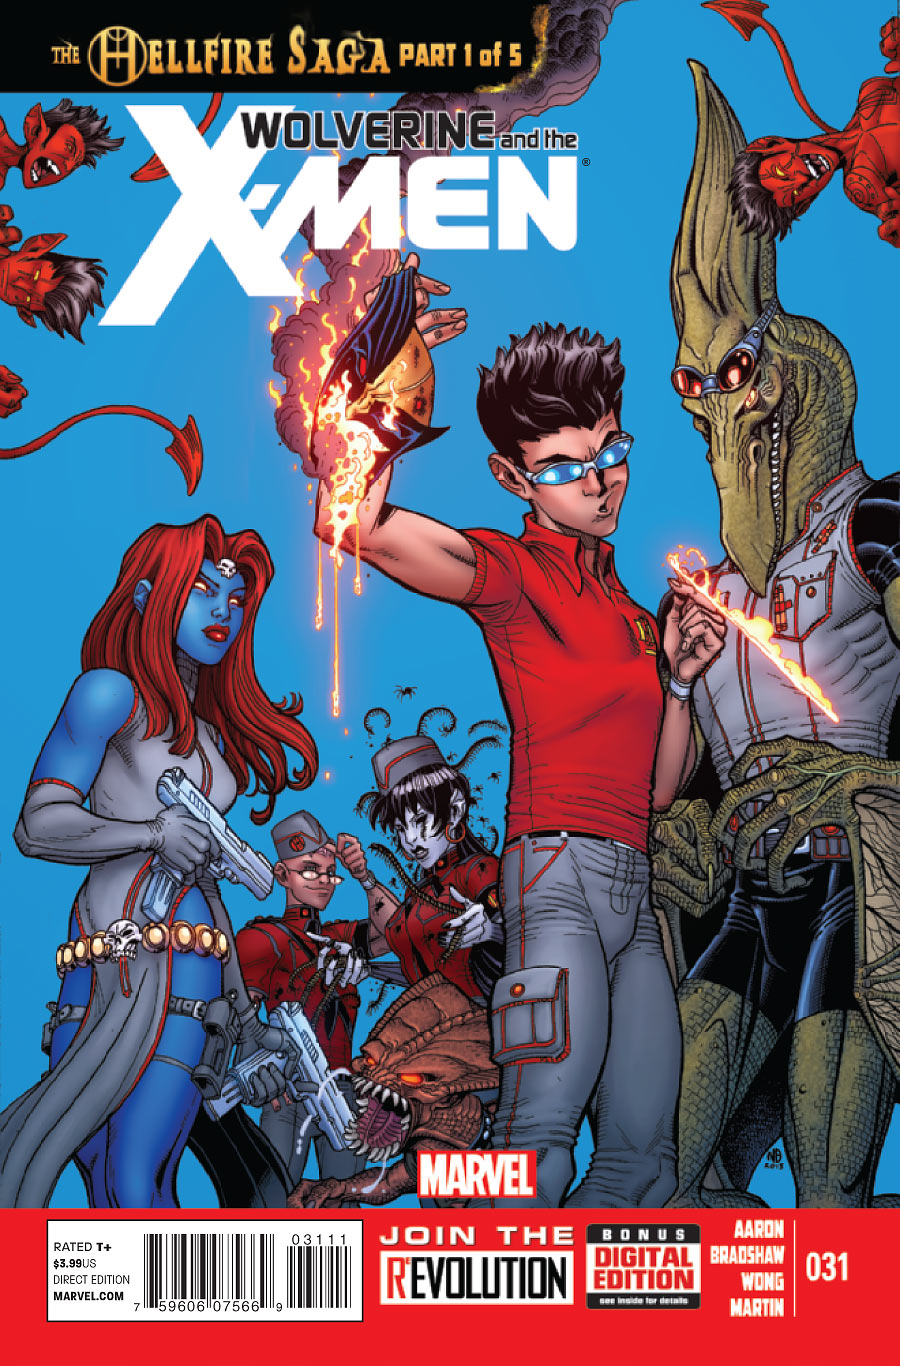 Wolverine and the X-Men Vol 1 31